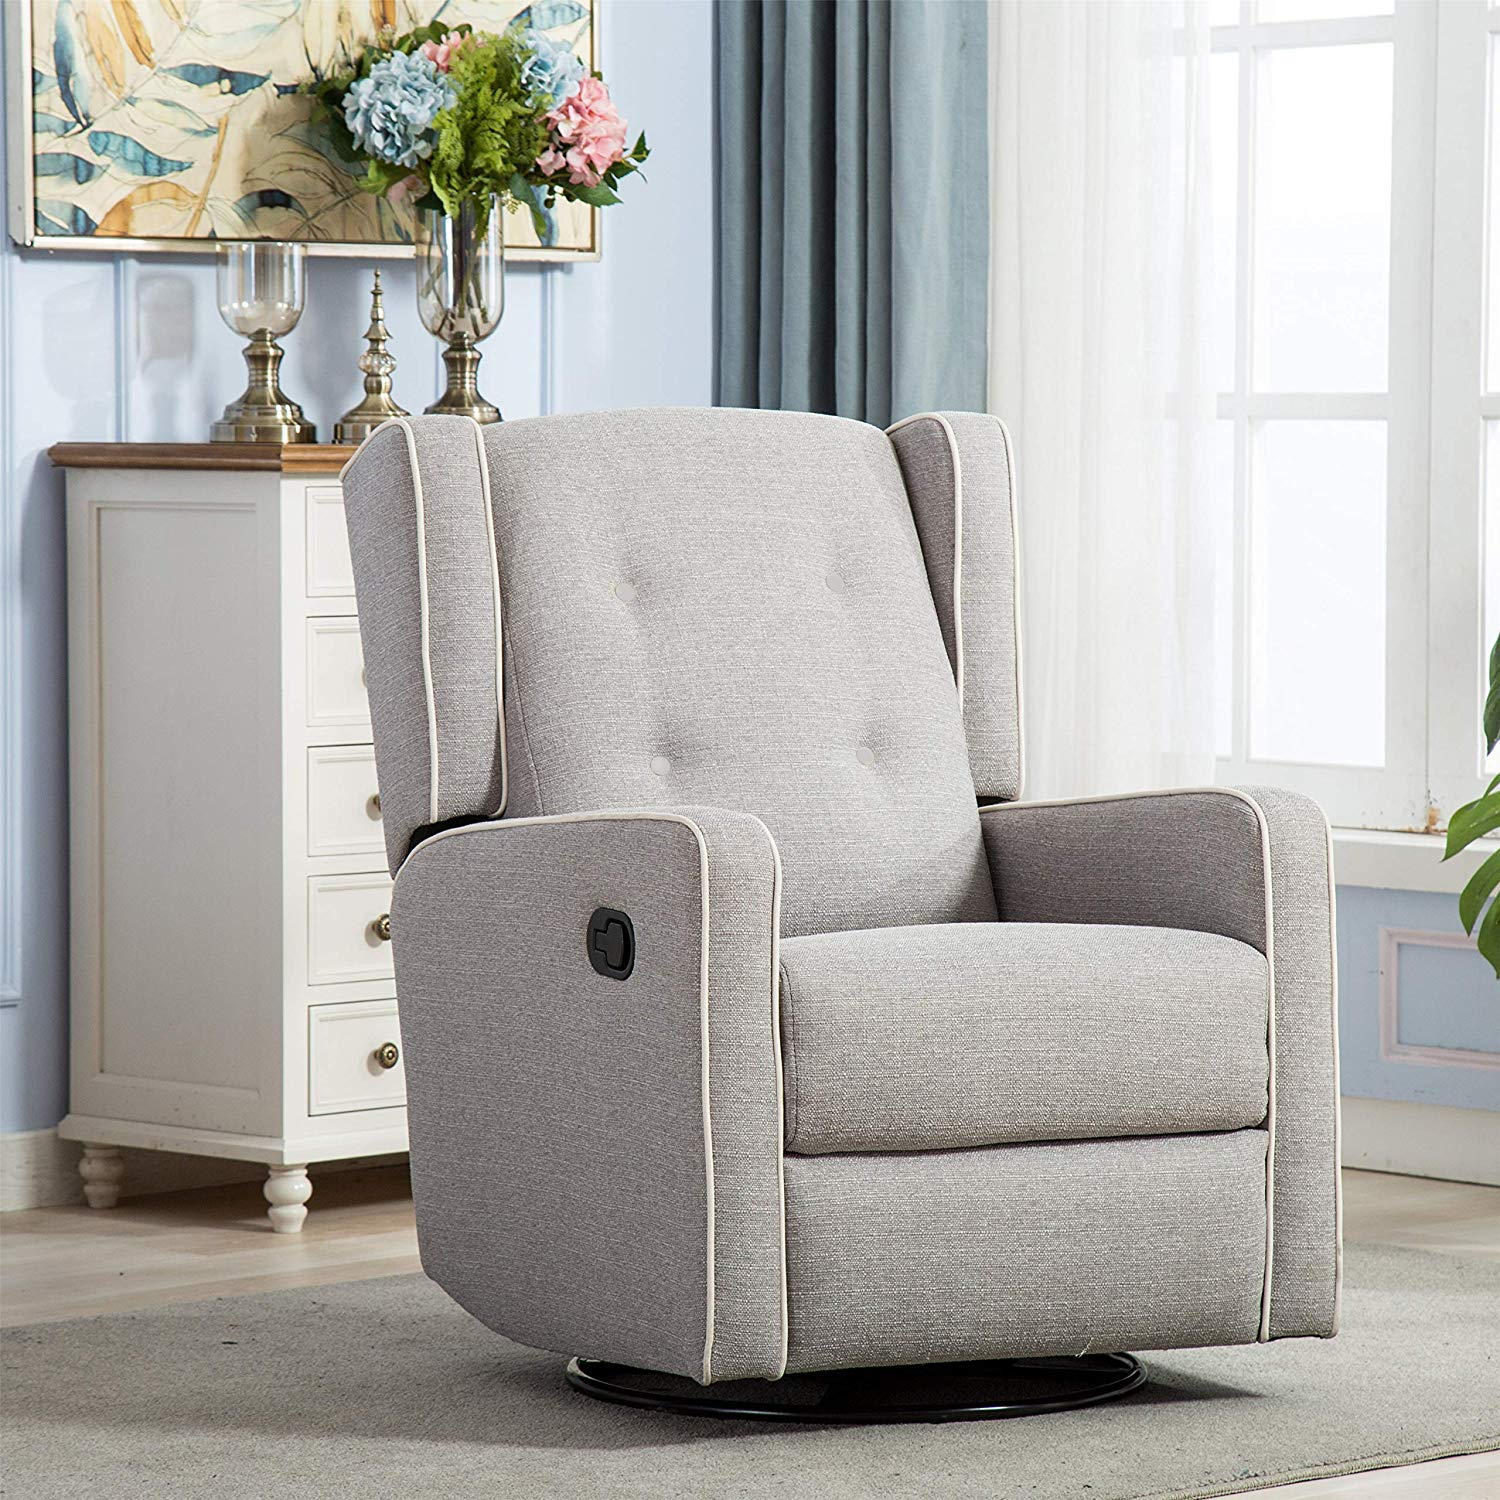 Amazon com canmov swivel rocker fabric manual recliner chair for living room soft microfiber single seat reclining sofa chair gray kitchen dining